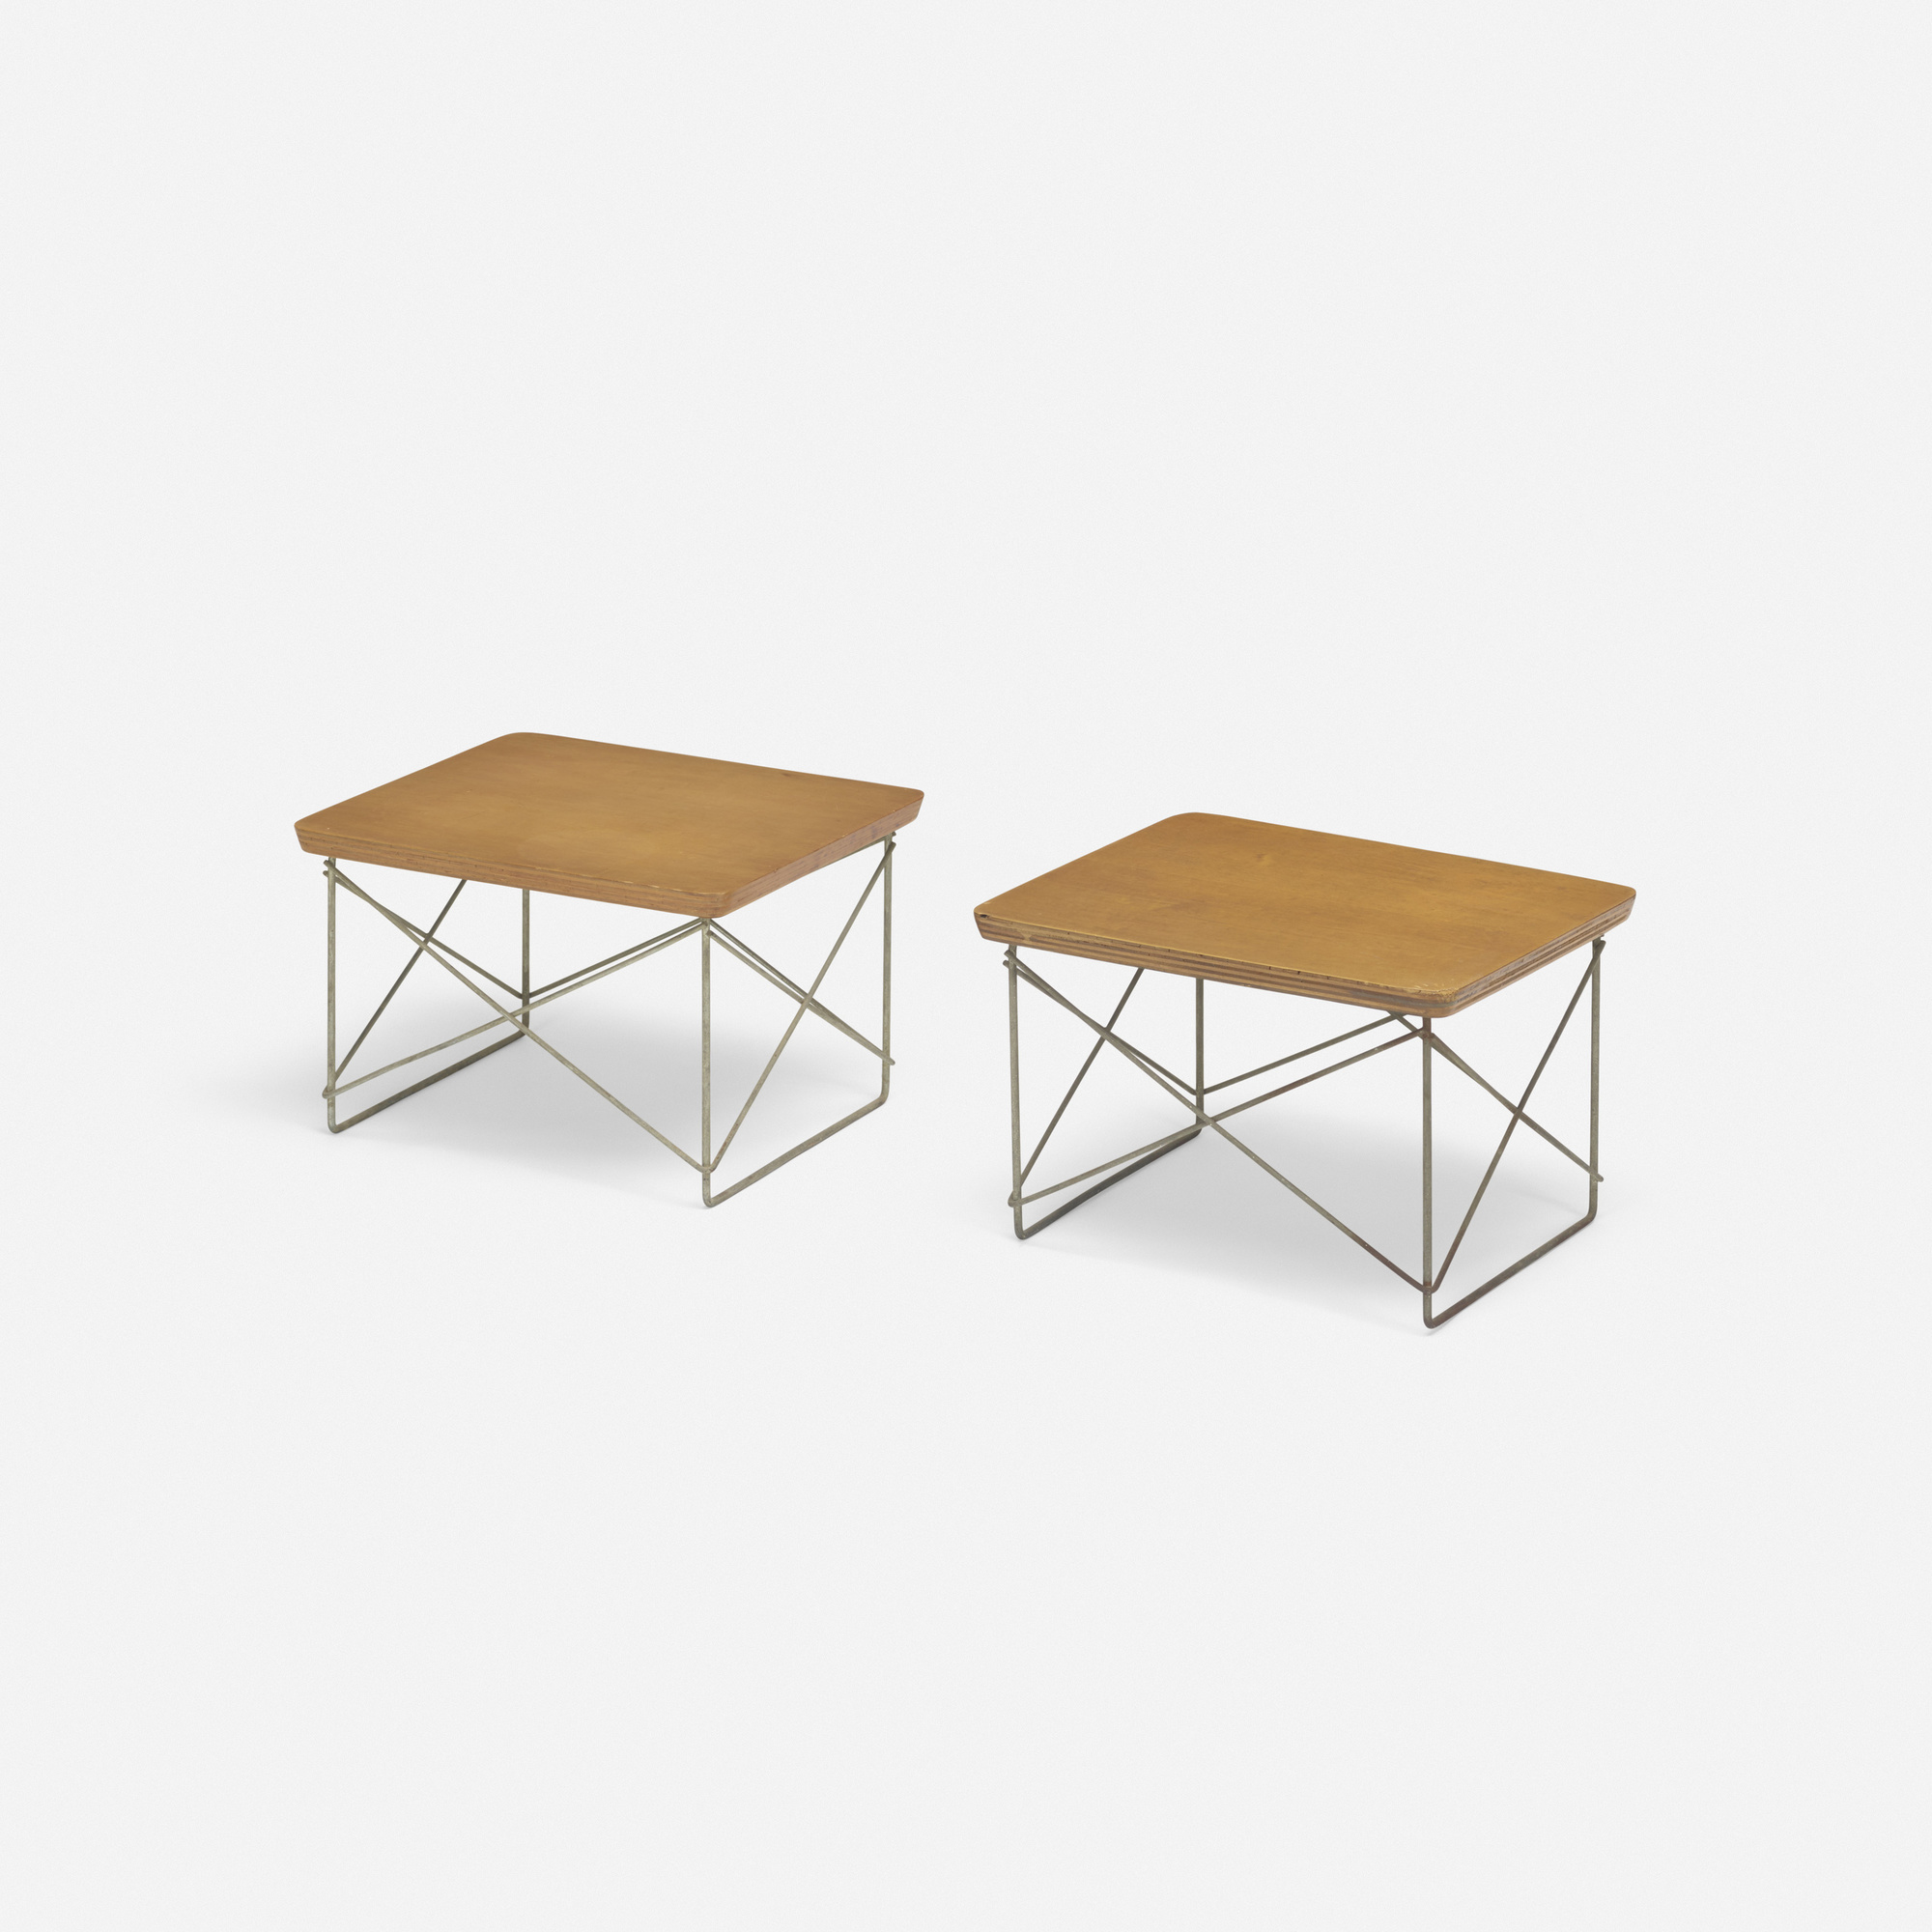 187: Charles and Ray Eames / LTRs, pair (1 of 2)